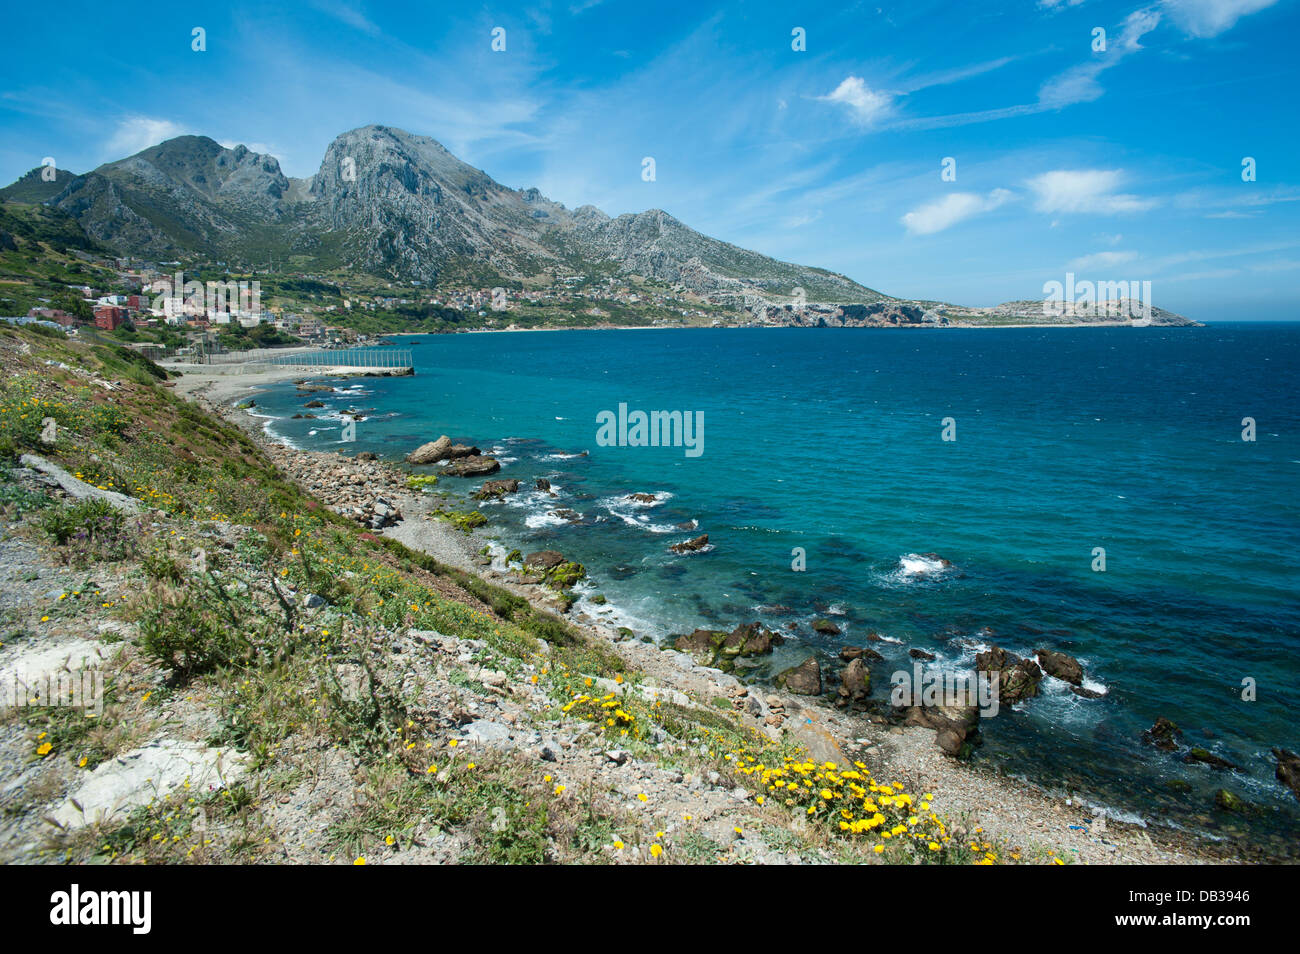 Benzu village at the border of the Spanish enclave of Ceuta and Morocco. Ceuta,North Africa. Spain. - Stock Image